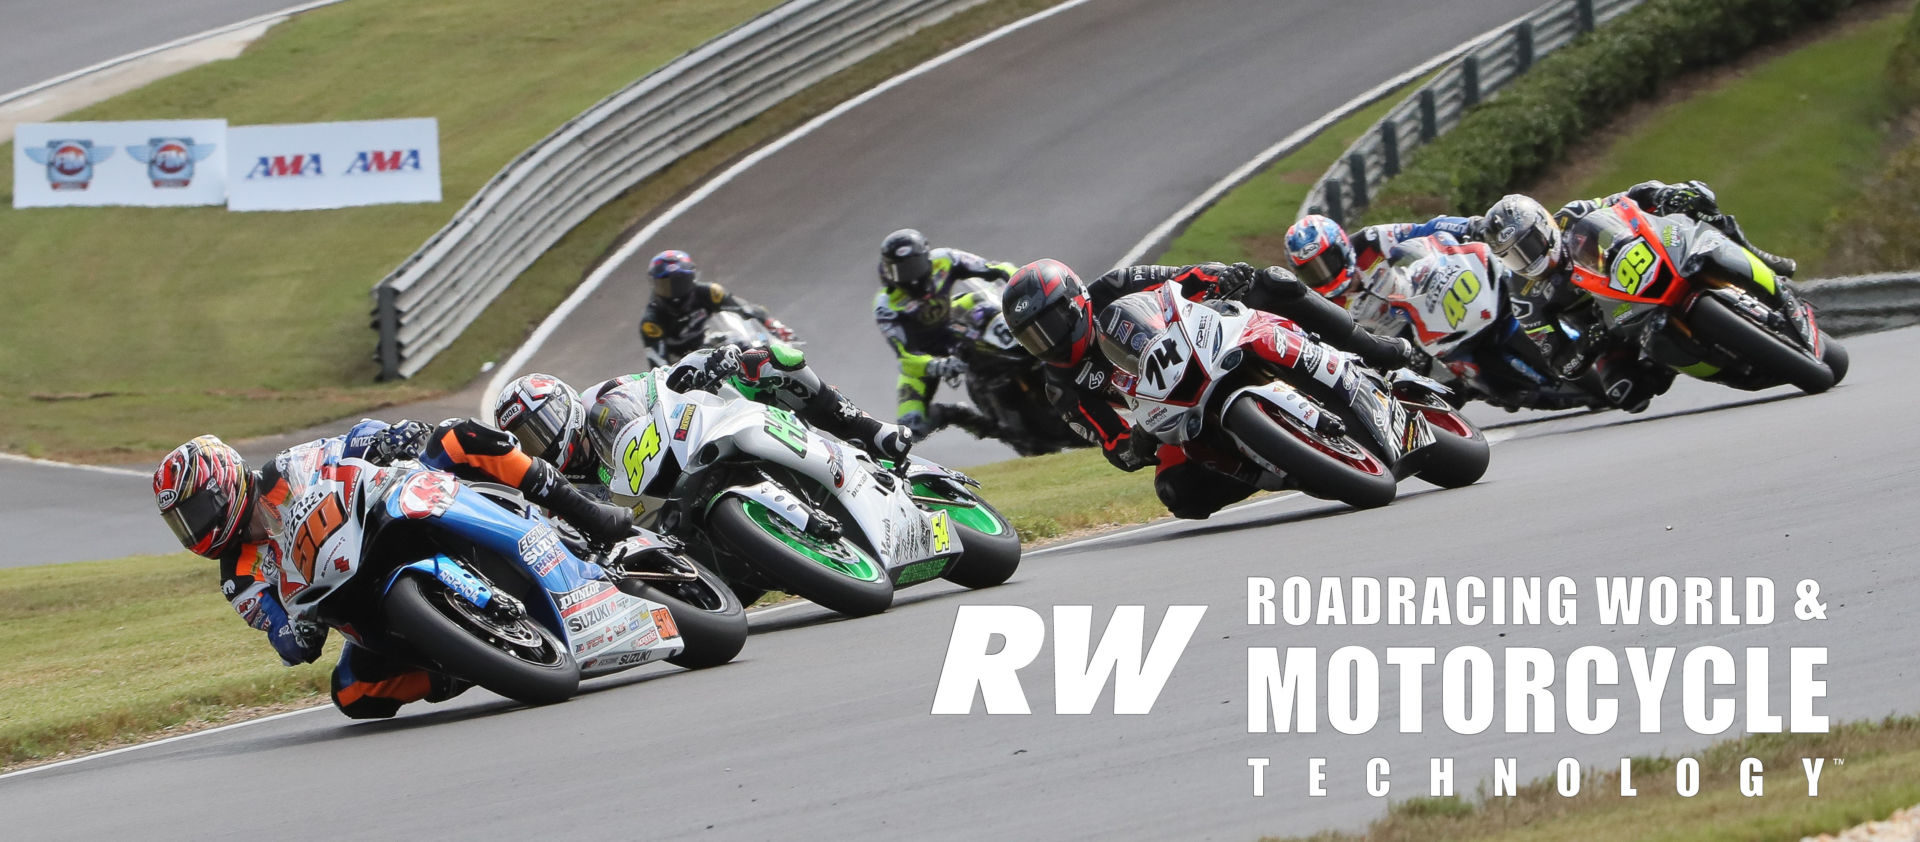 The start of MotoAmerica Supersport Race One at Barber Motorsports Park in 2019. Bobby Fong (50) leads Richie Escalante (54), Bryce Prince (74), PJ Jacobsen (99), Sean Dylan Kelly (40), Hayden Gillim (69), and Cory Ventura. Photo by Brian J. Nelson.